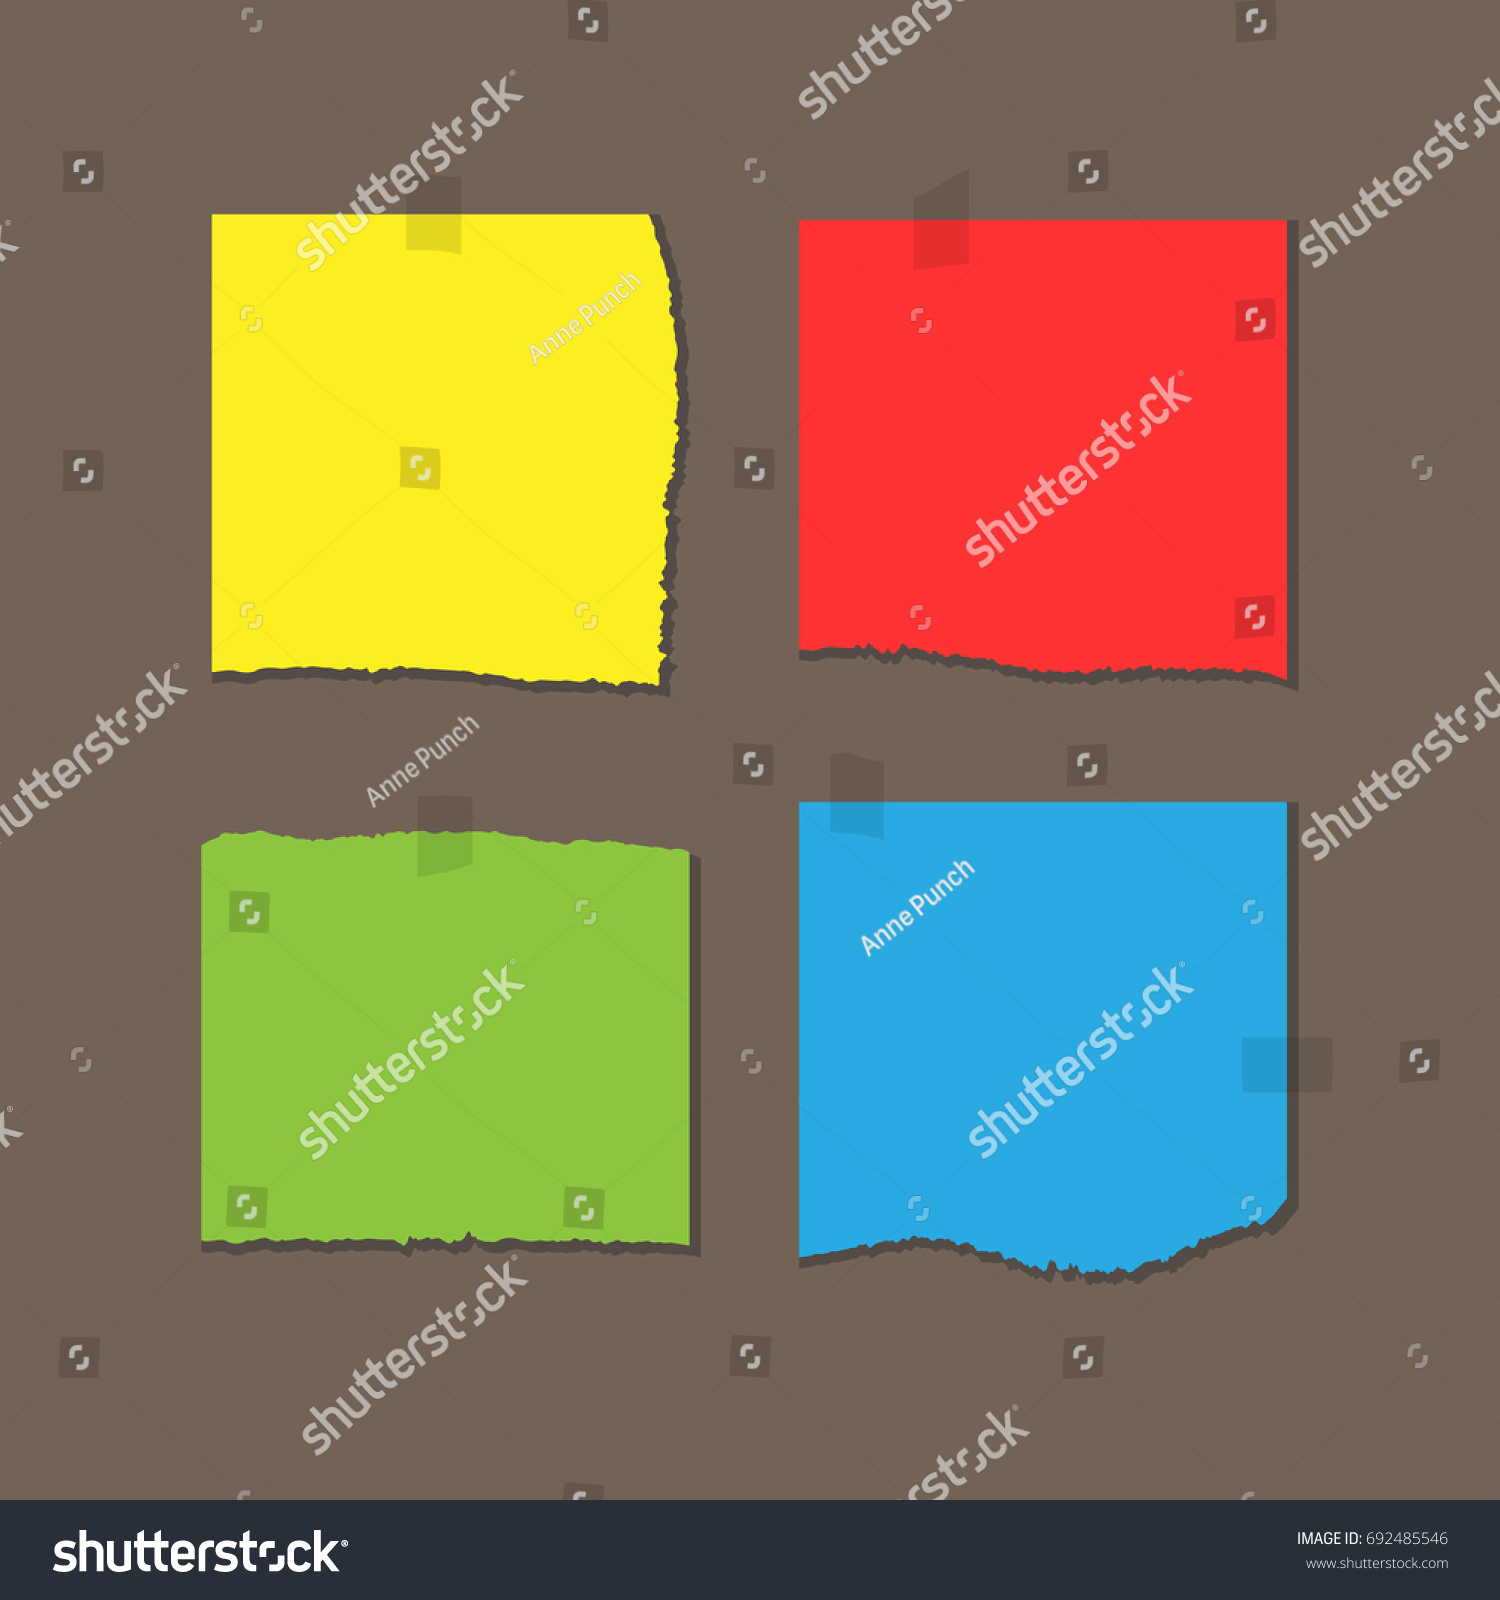 Square Colored Sheets Paper Torn Edges Stock Vector 692485546 ...